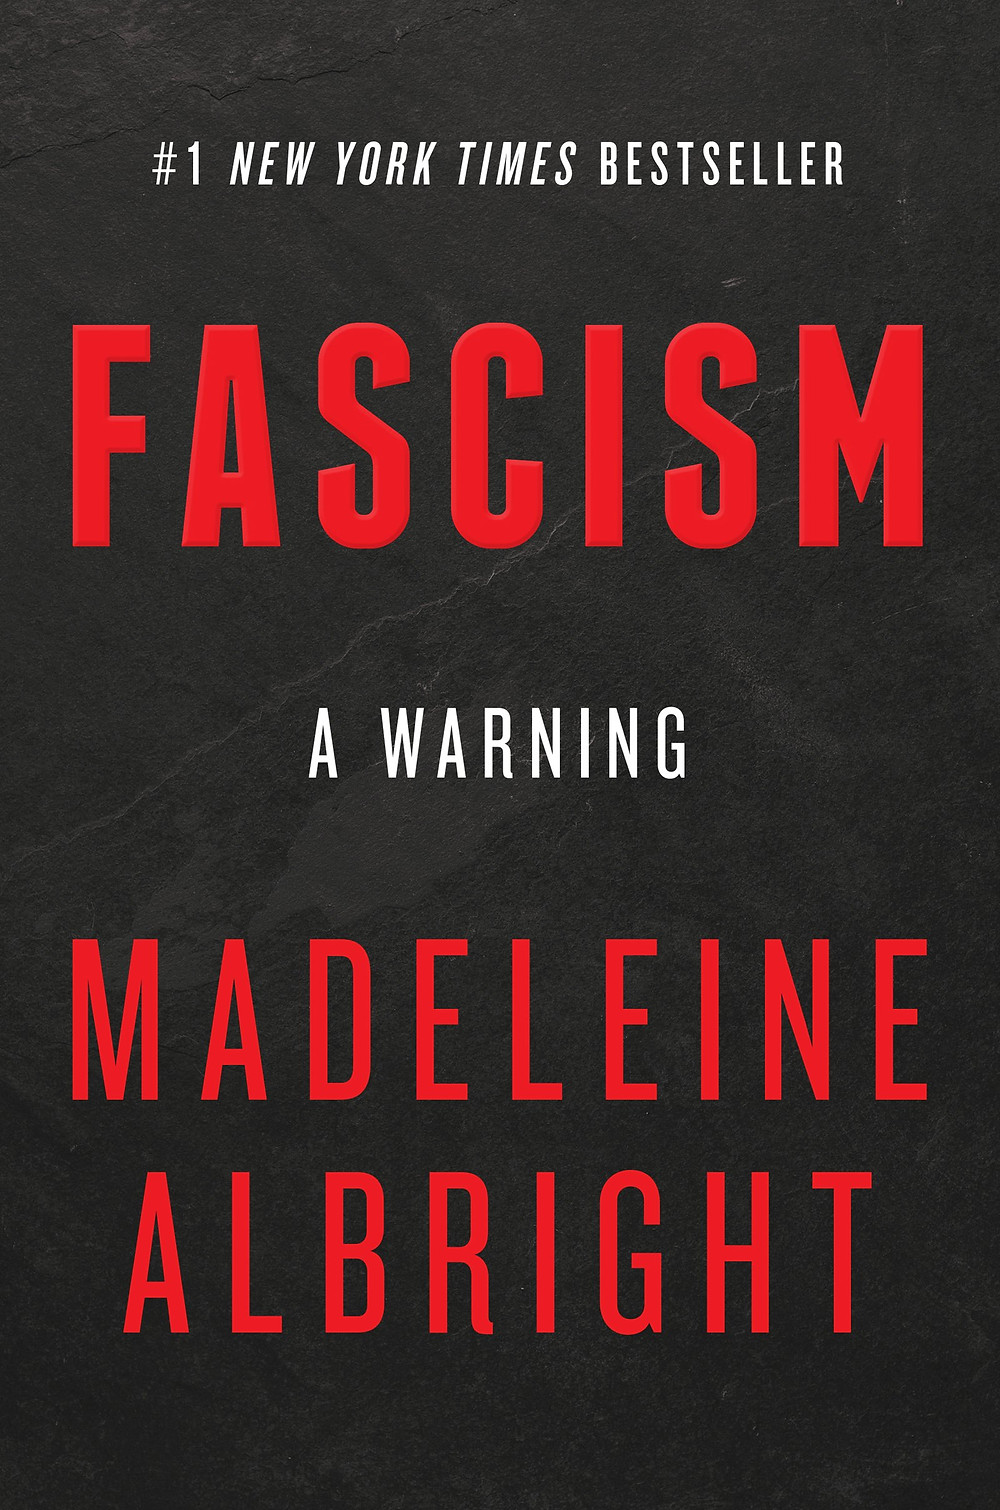 Fascism: A Warning by Madeleine Albright